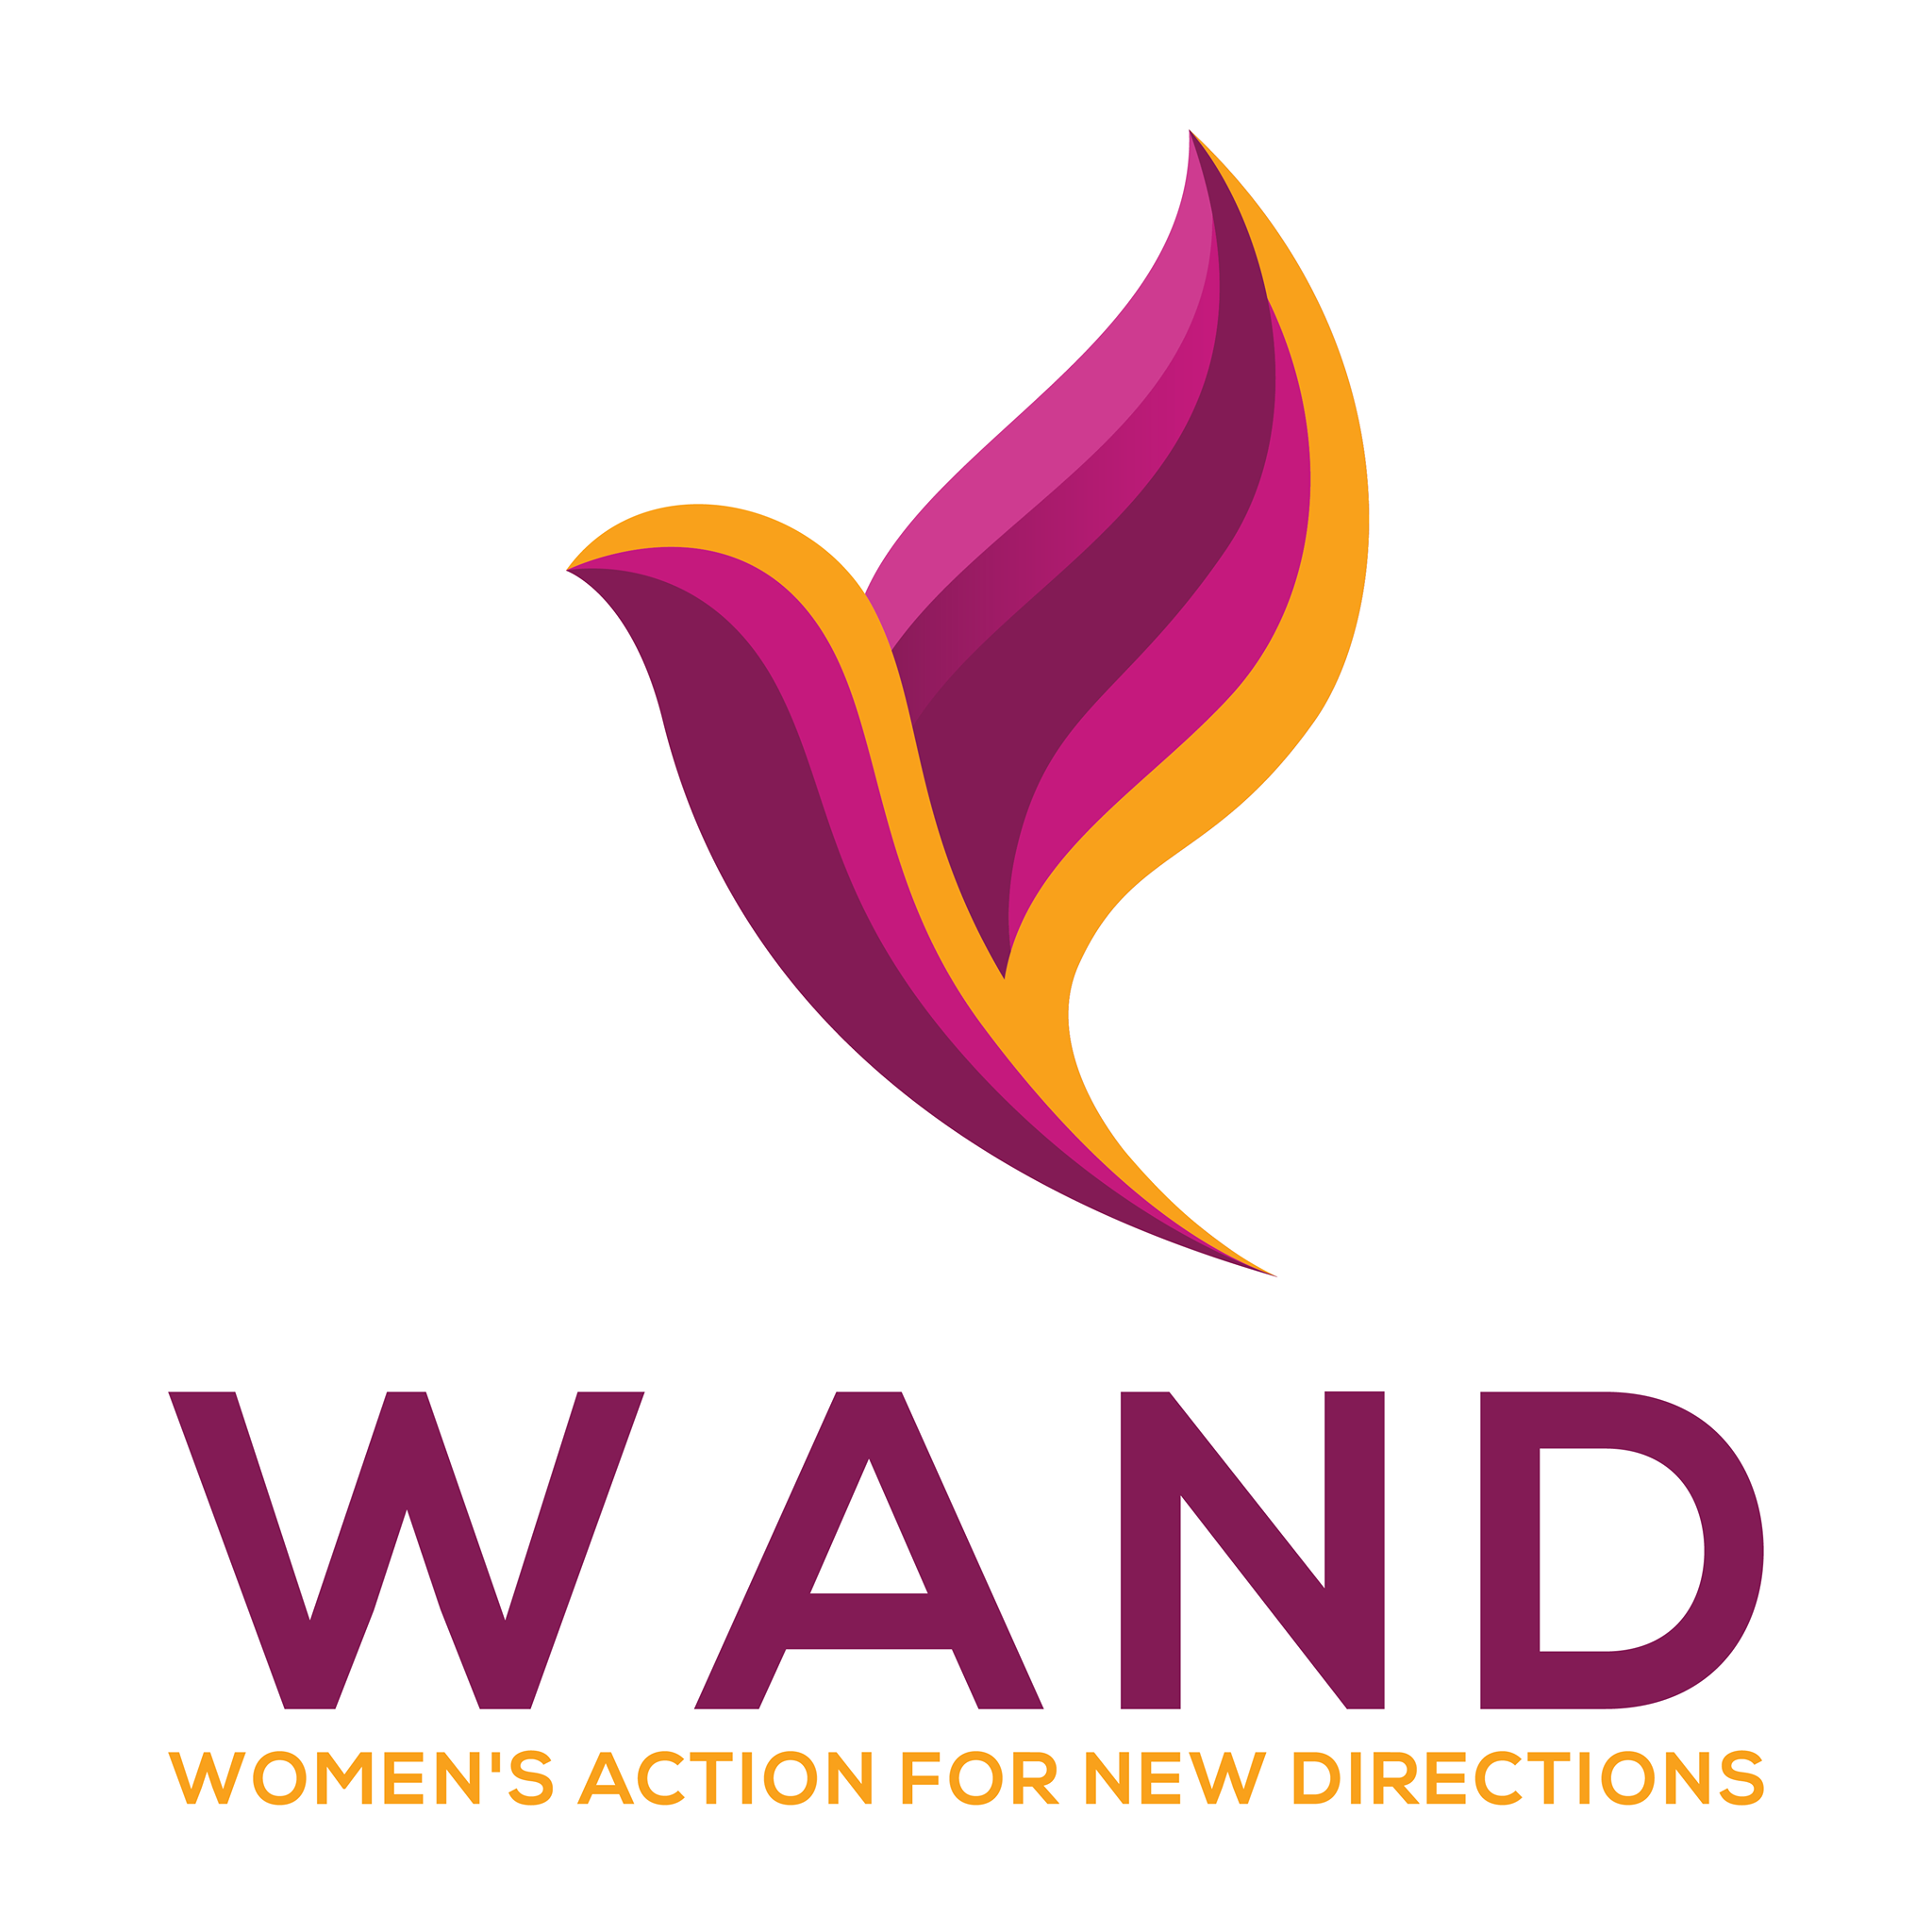 Women's Action for New Directions